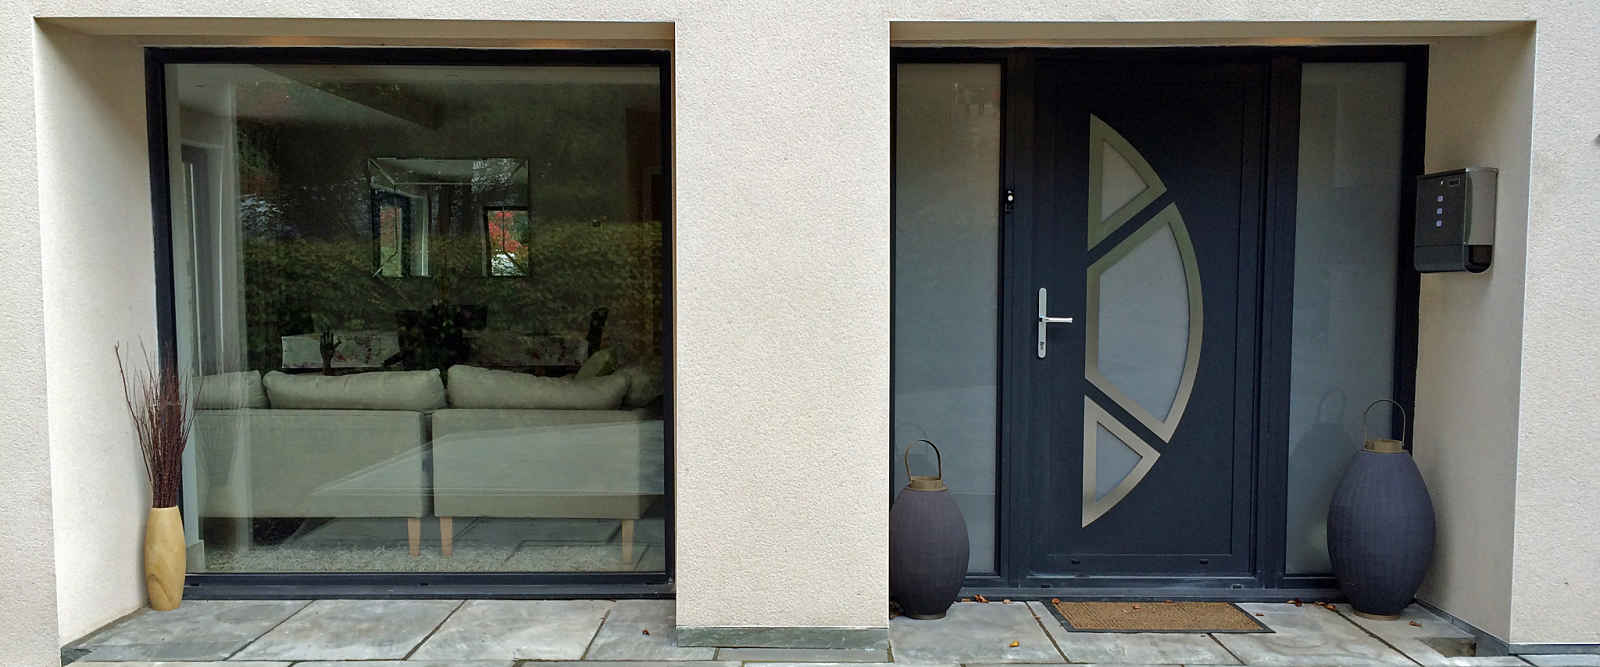 Residential Aluminum Entrance Doors : Aluminium front doors marlin windows keighley yorkshire